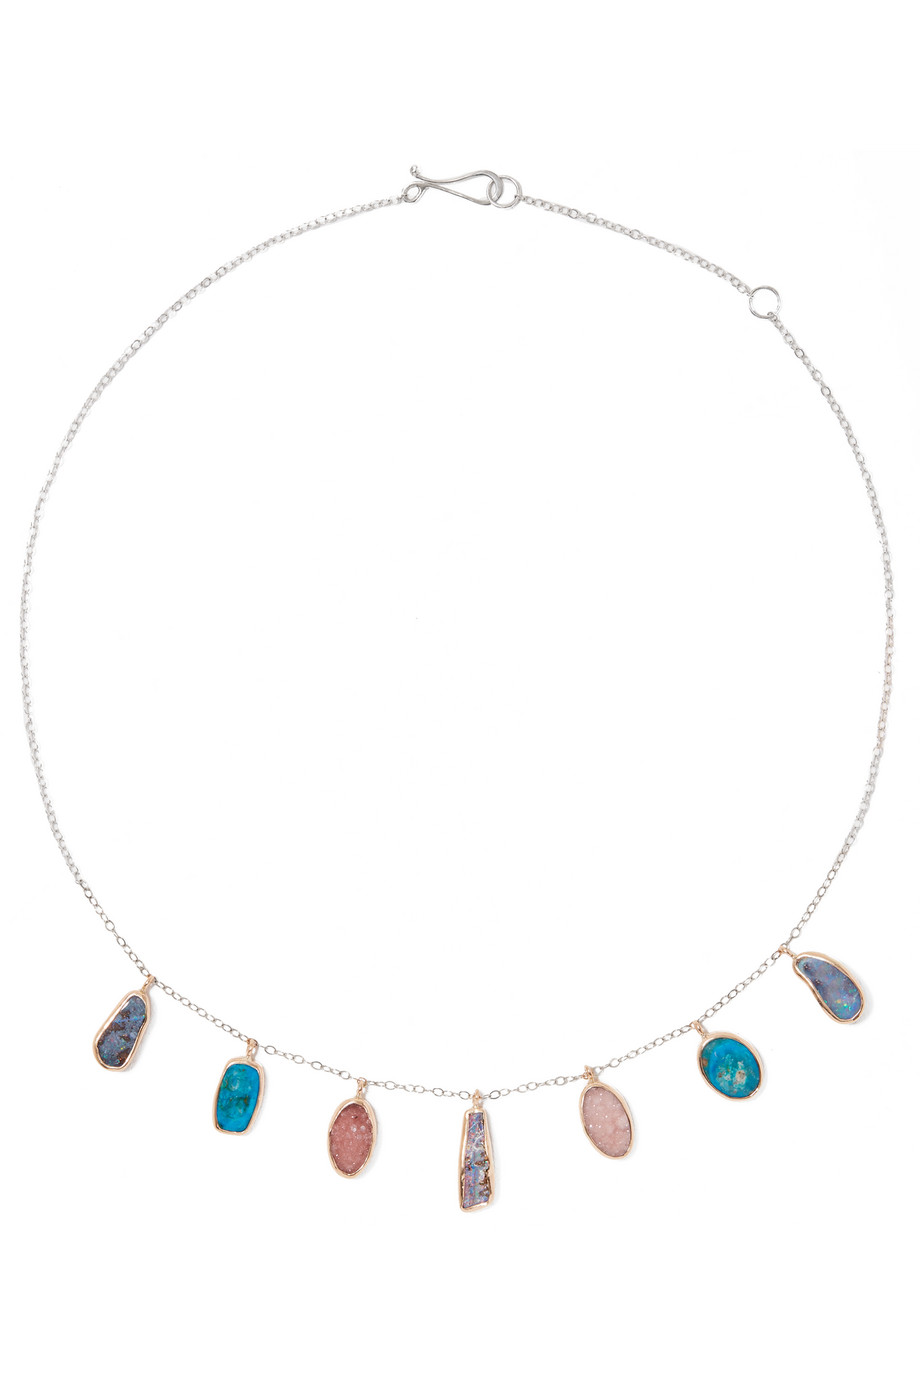 14-Karat Gold, Sterling Silver, Opal and Druzy Necklace, Melissa Joy Manning, Gold/Blue, Women's